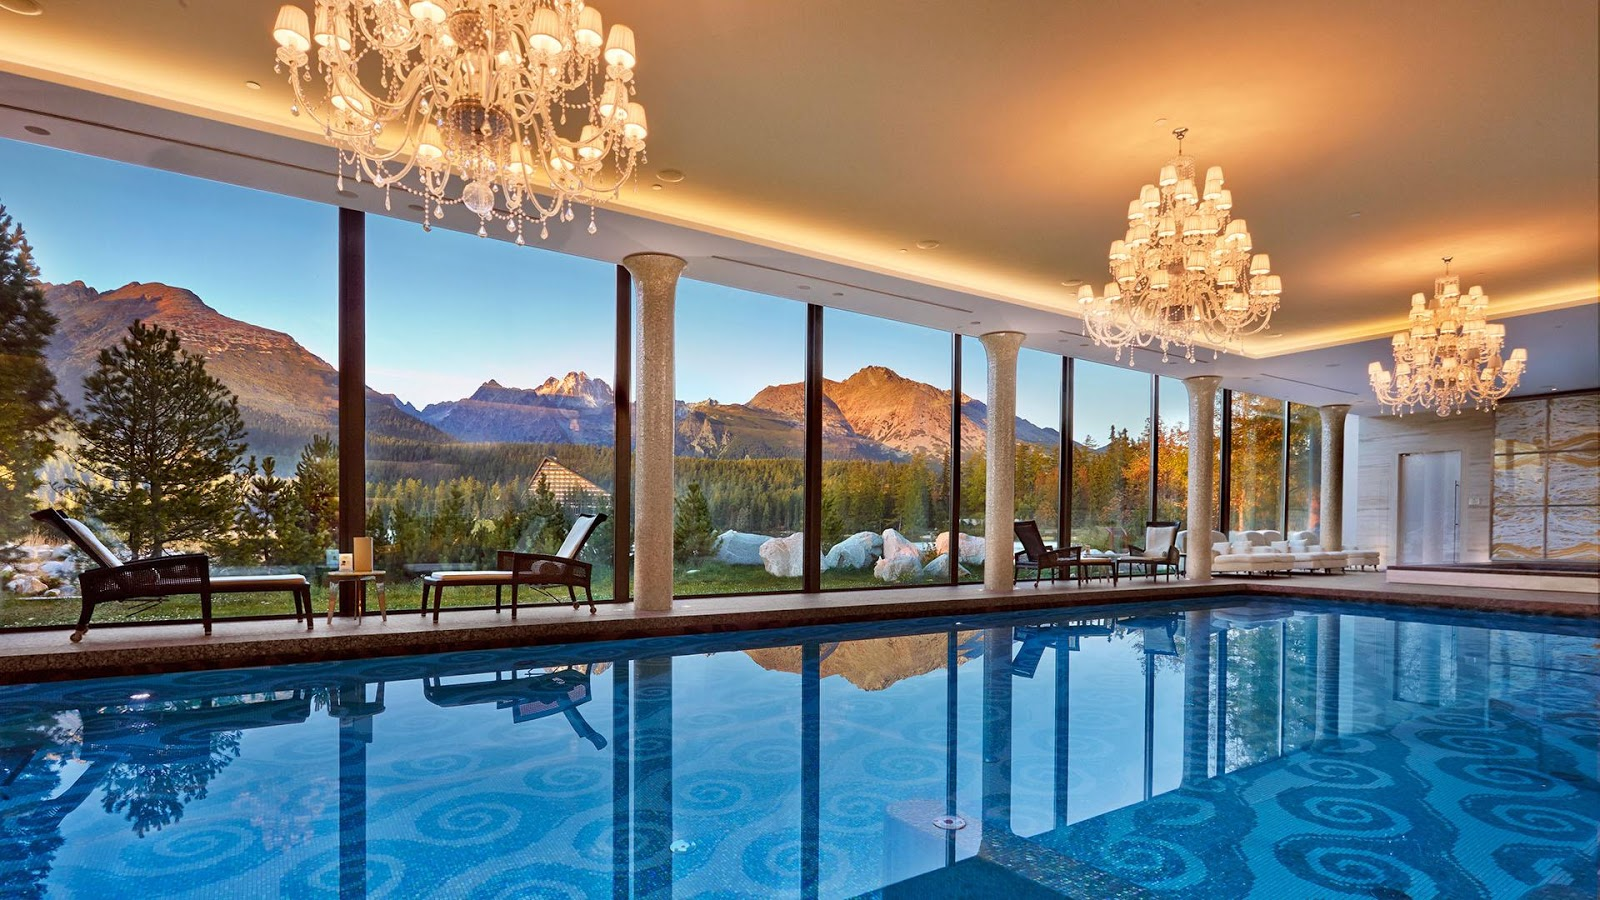 Deluxshionist Legendary Luxury Hotel - Kempinski High Tatras Slovakia zion-spa-luxury.